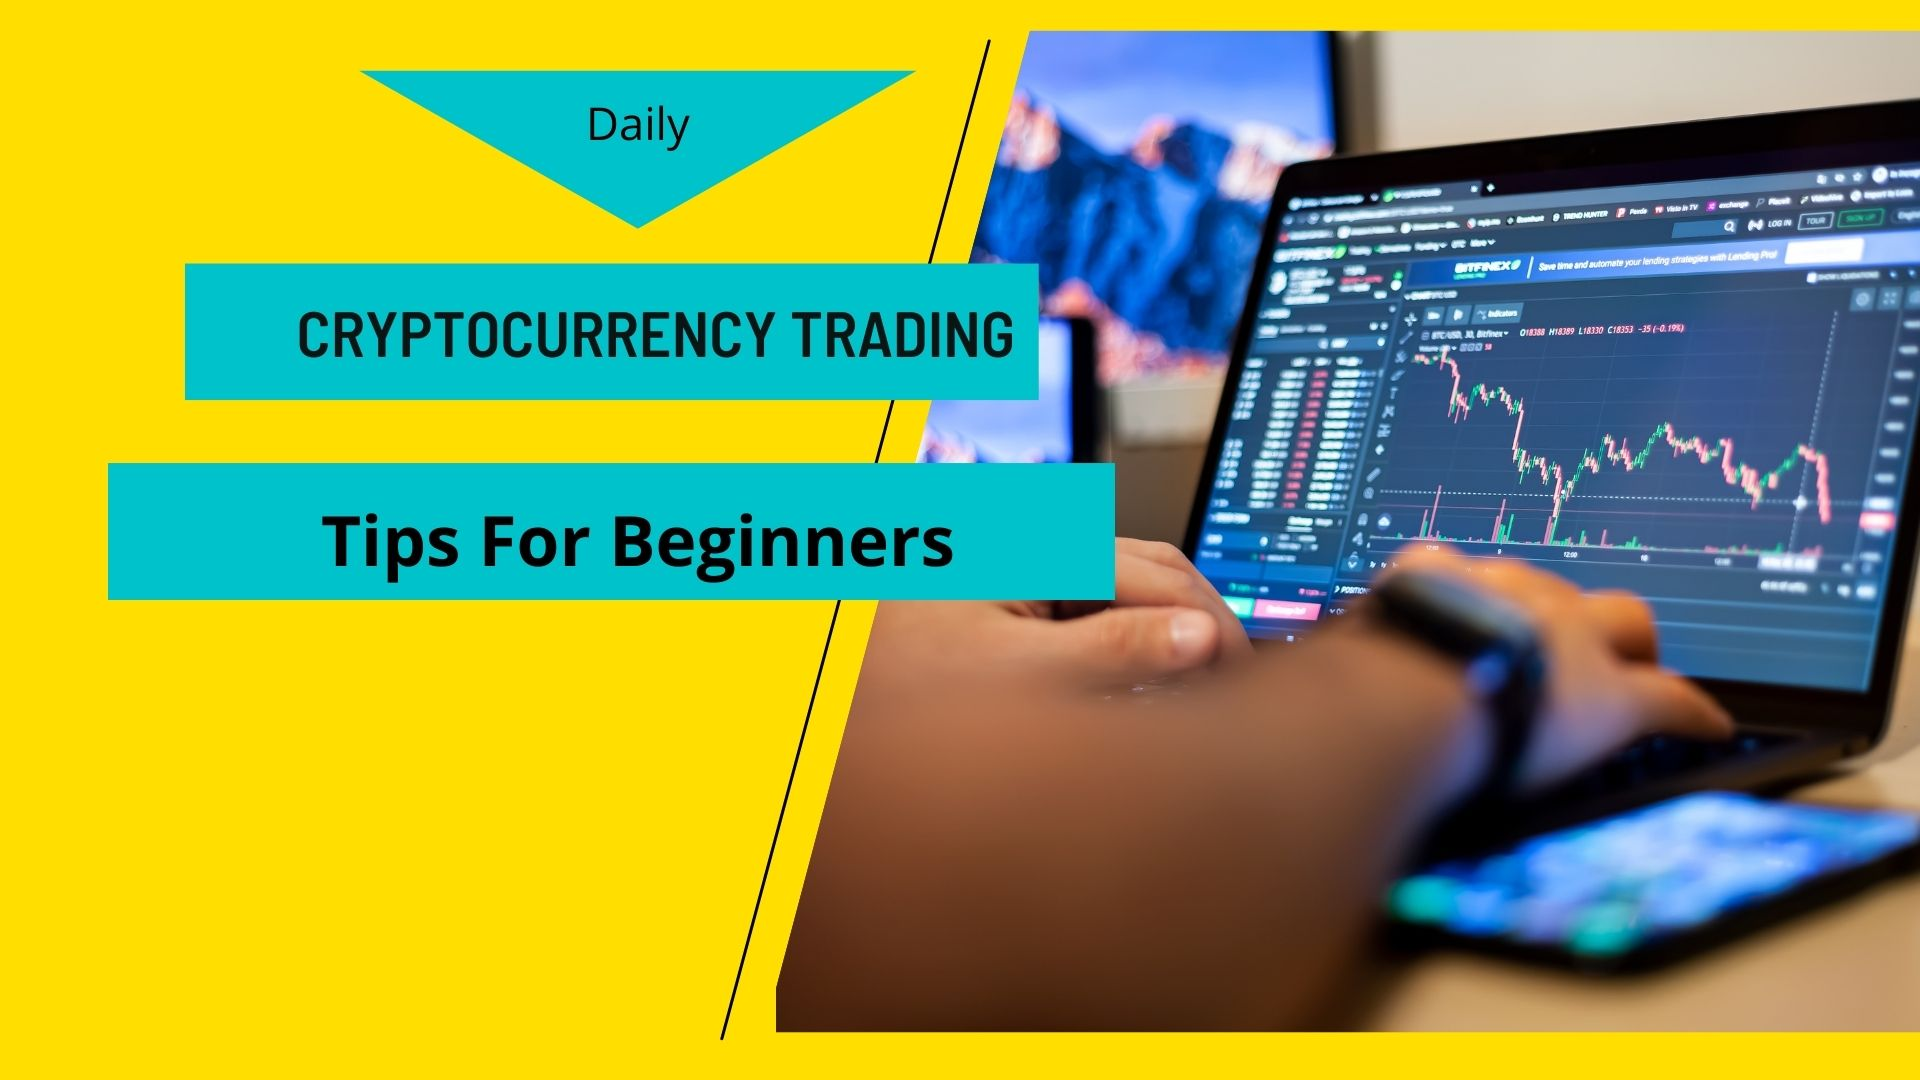 Daily Cryptocurrency Trading Tips